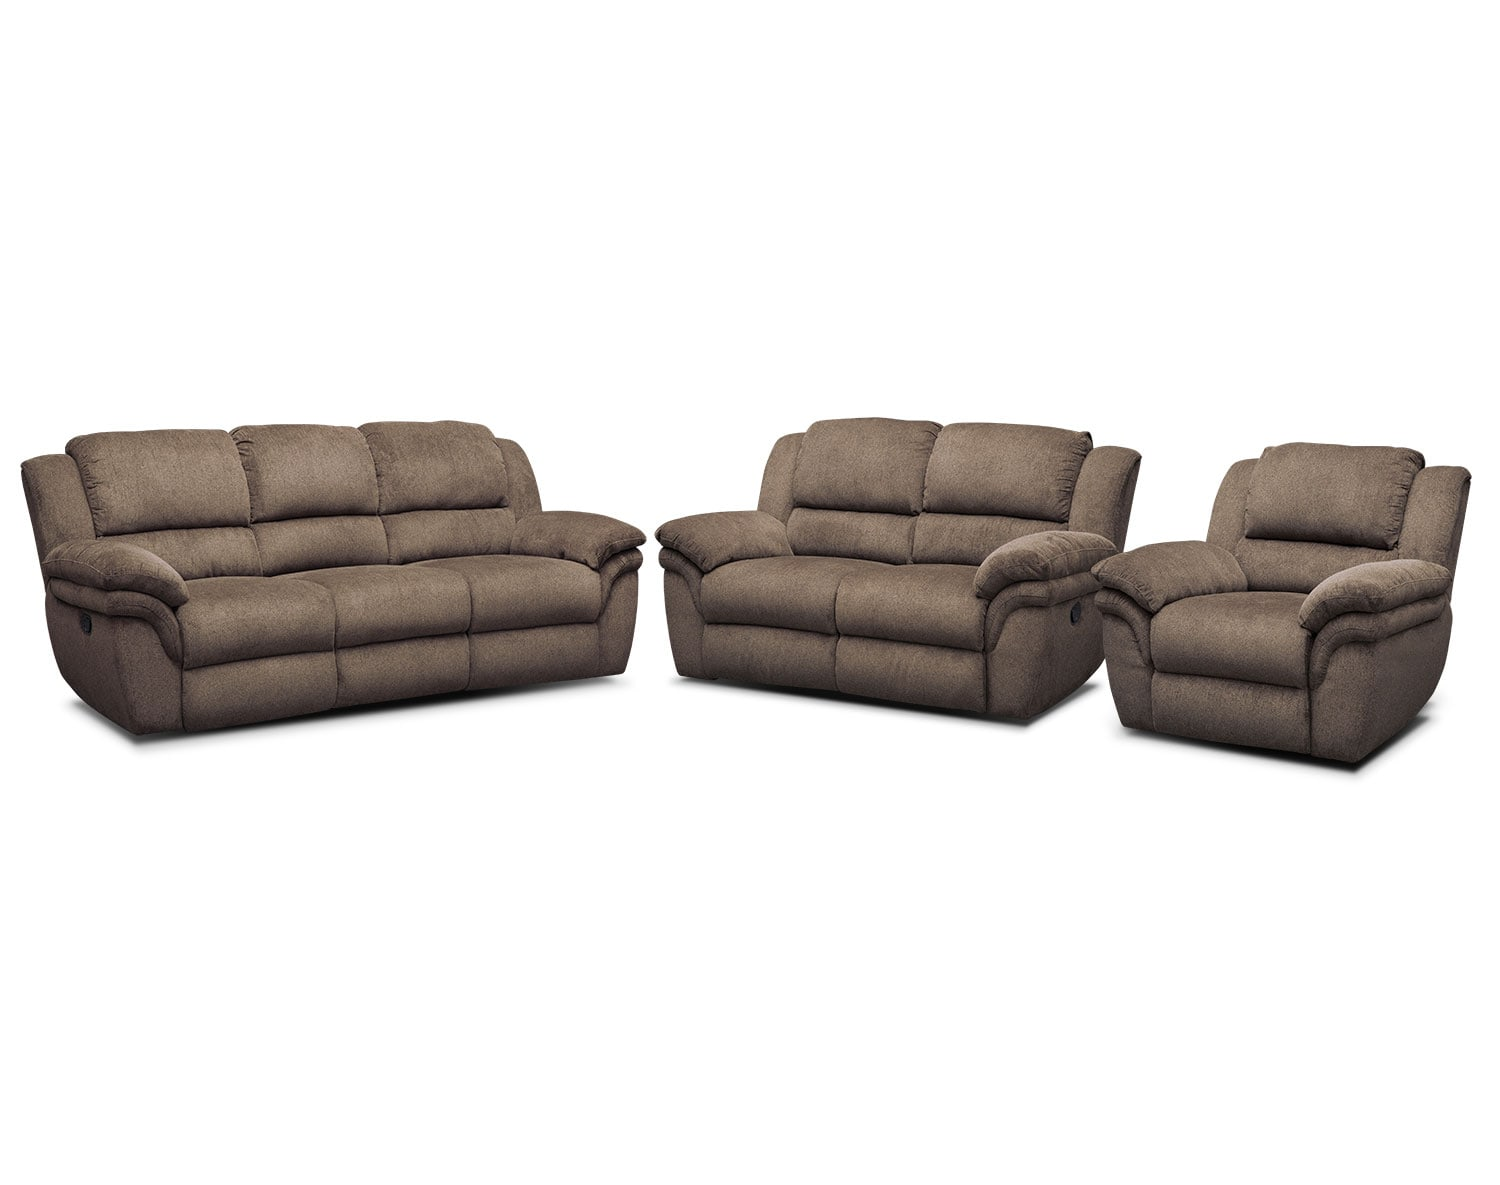 The Aldo Manual Reclining Living Room Collection- Mocha